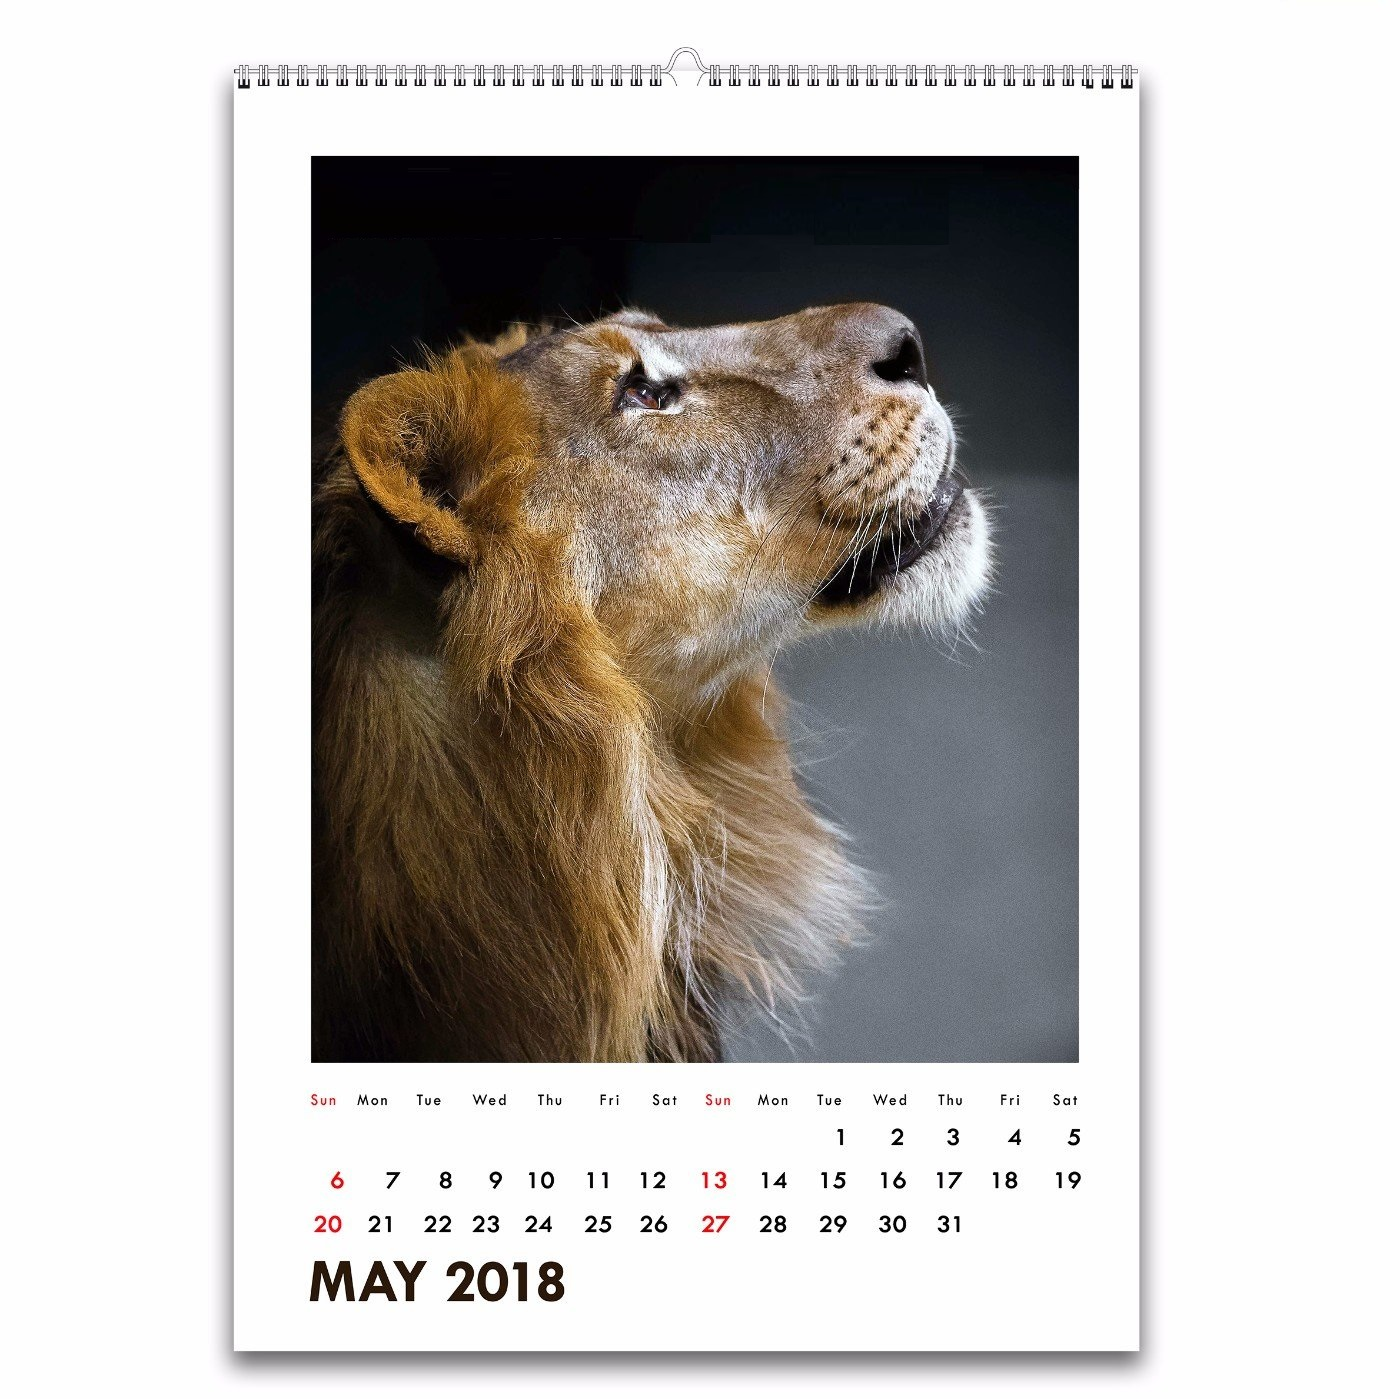 Amazing May 2018 Wall Calendar